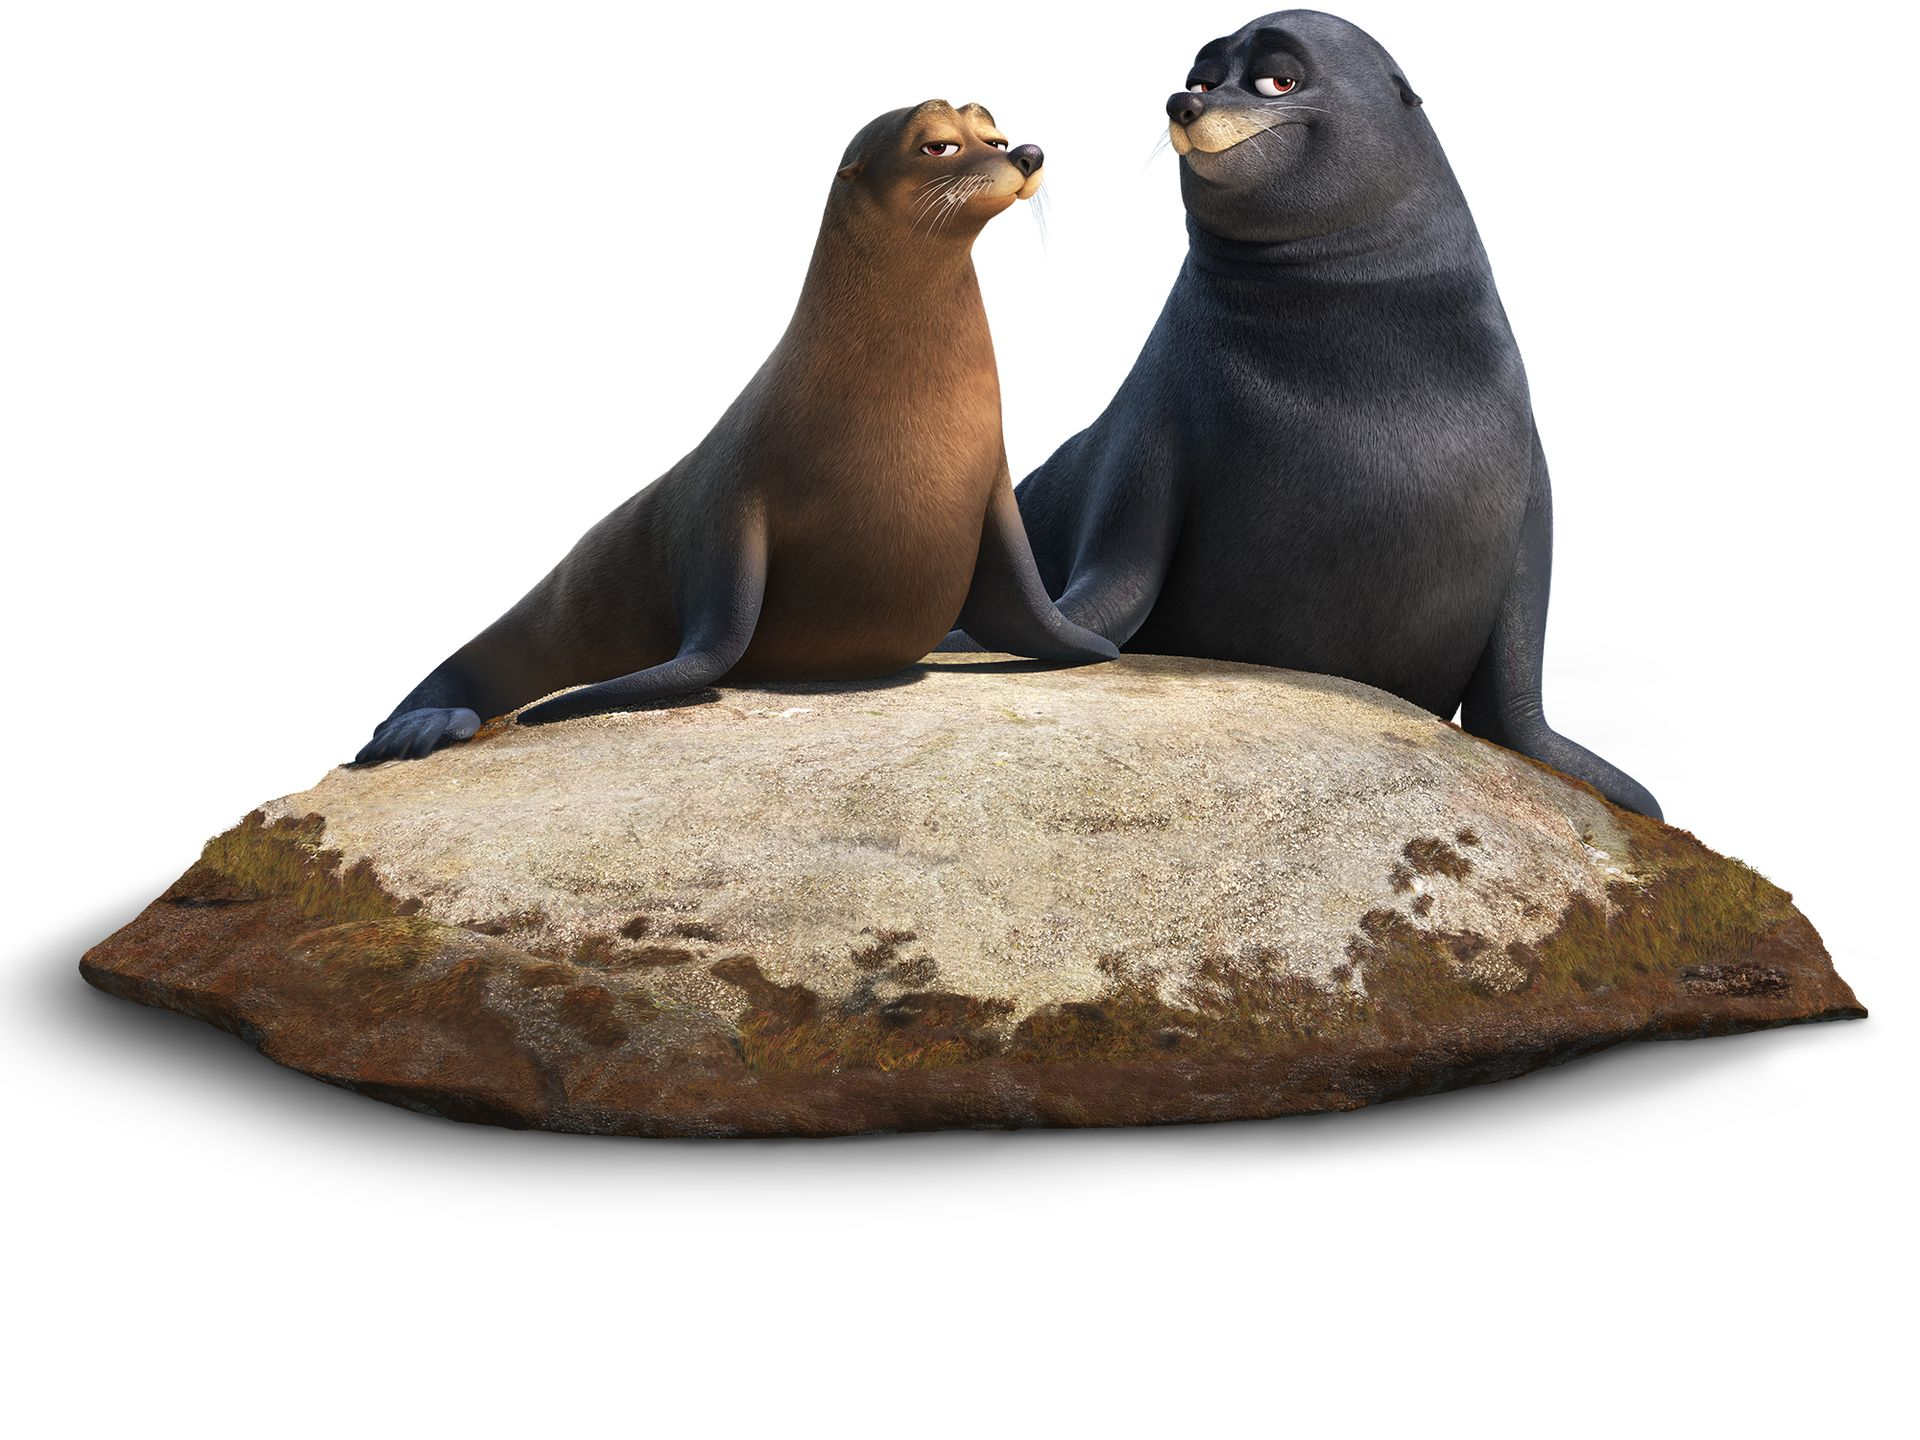 FINDING DORY Character Images Reveal Otters, Sea Lions, Loons, and.